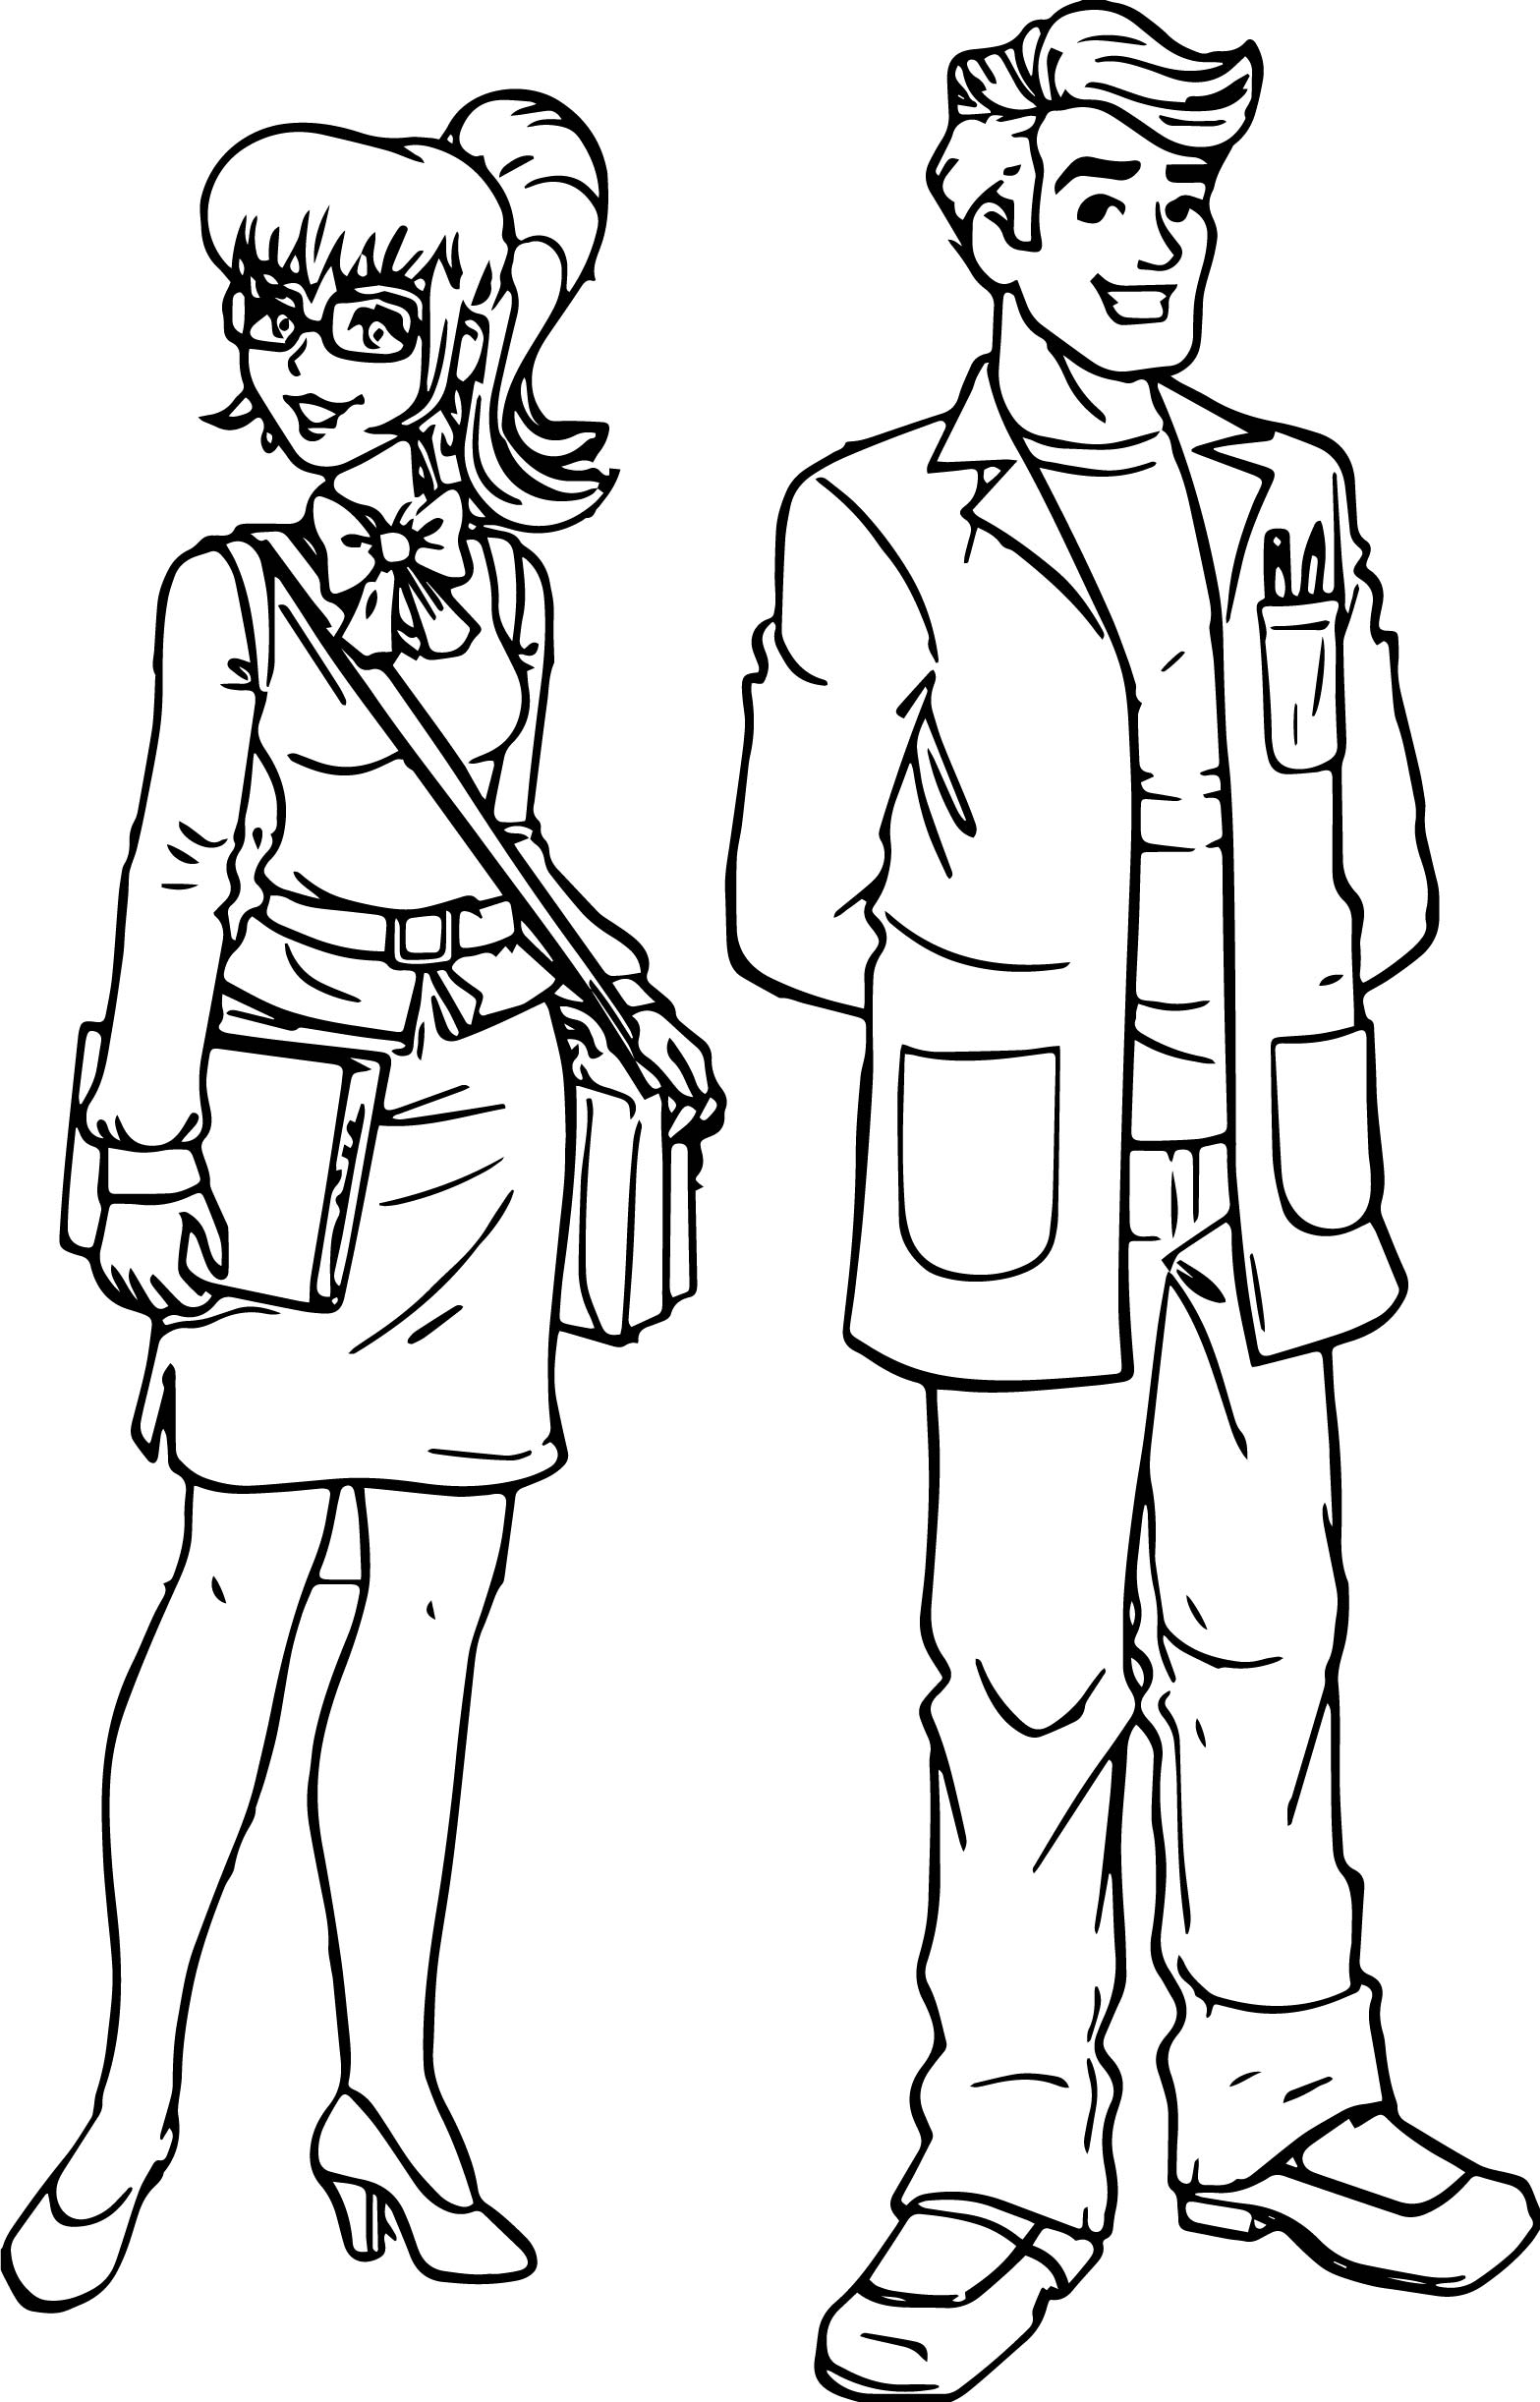 woman teacher monica and man teacher coloring page wecoloringpage